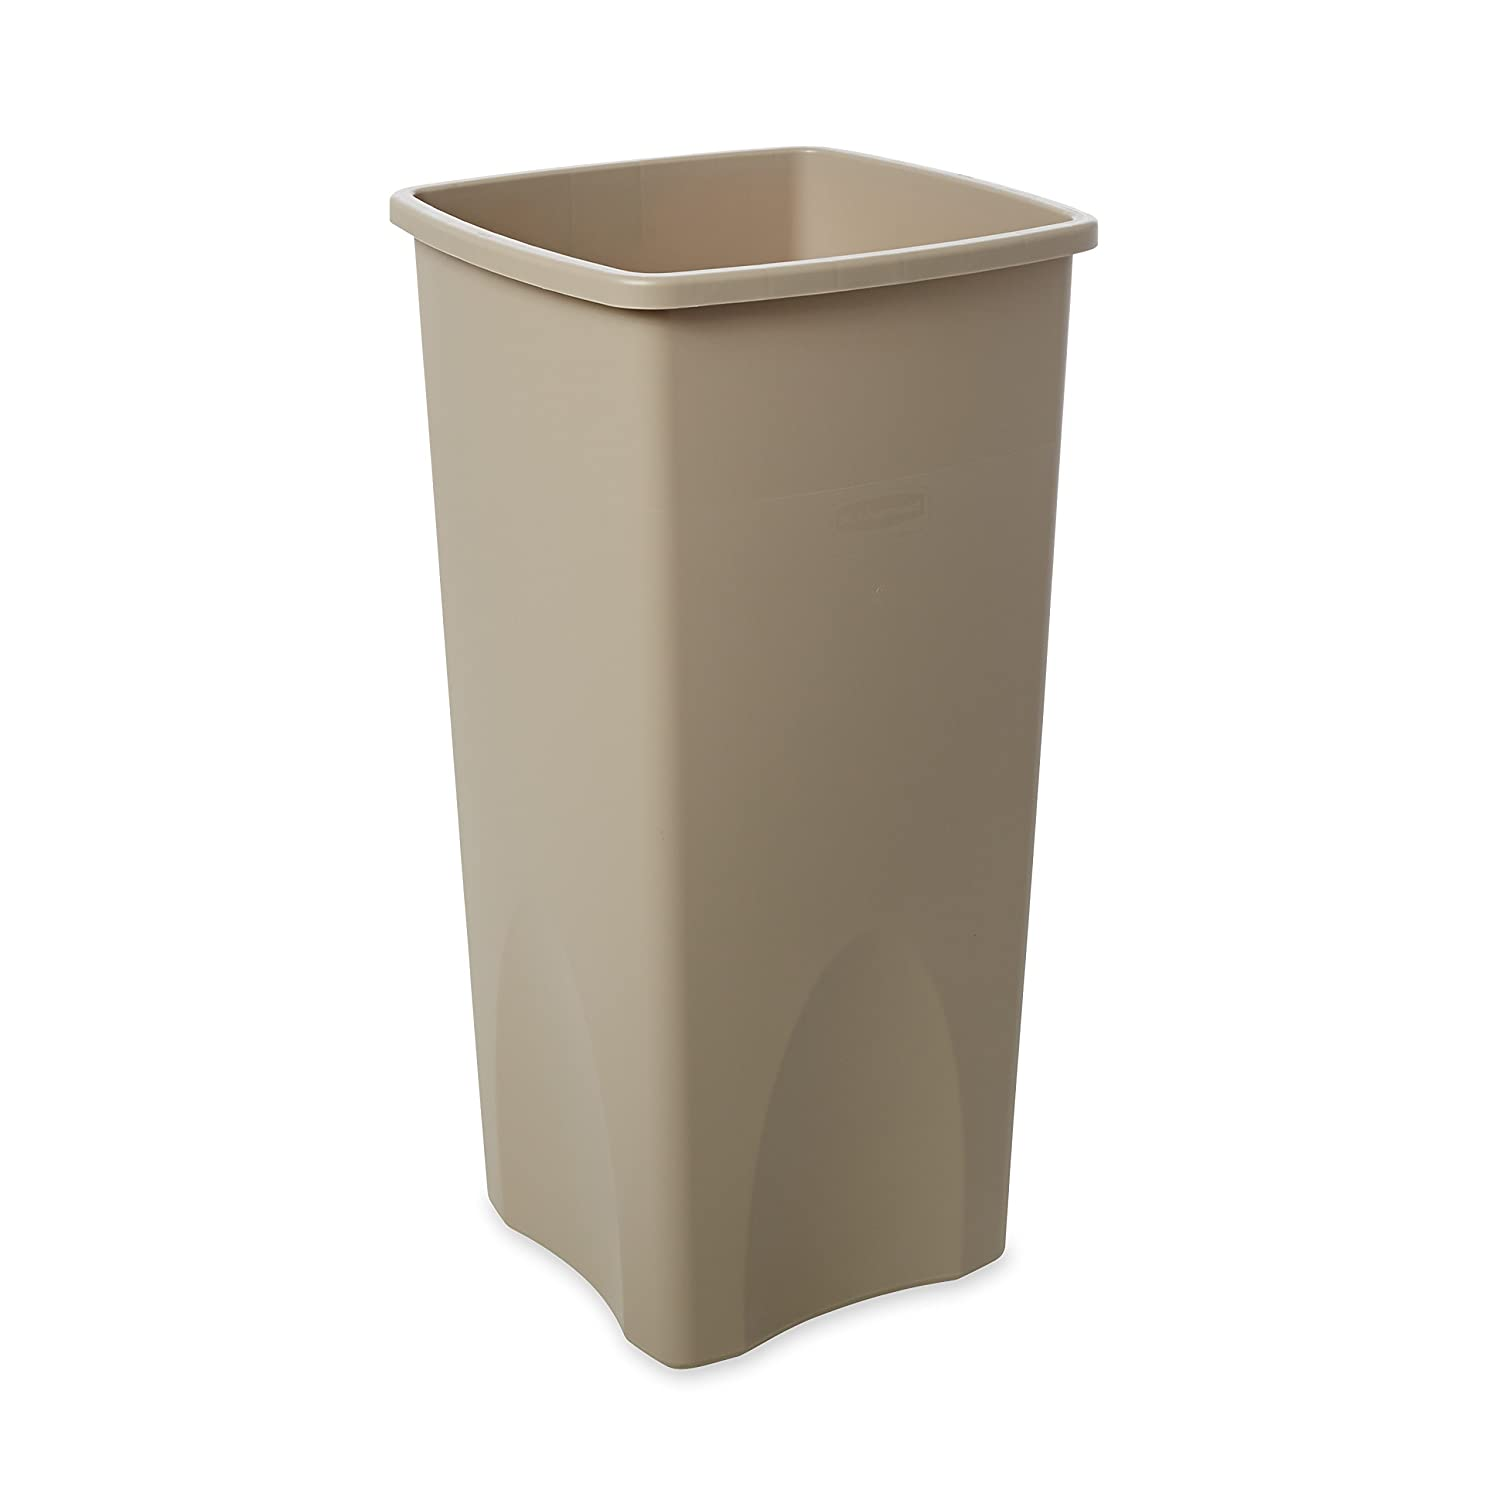 Rubbermaid Commercial FG356988BEIG Rectangular 23-Gallon Untouchable Trash Can, Beige